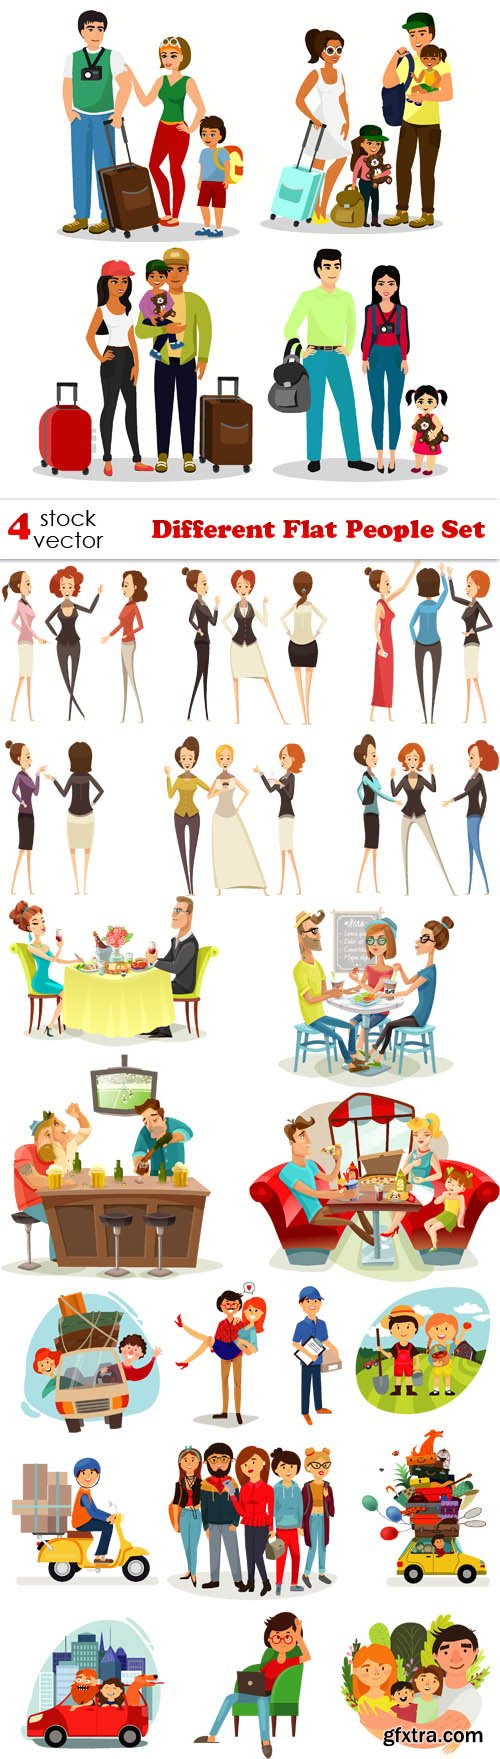 Vectors - Different Flat People Set